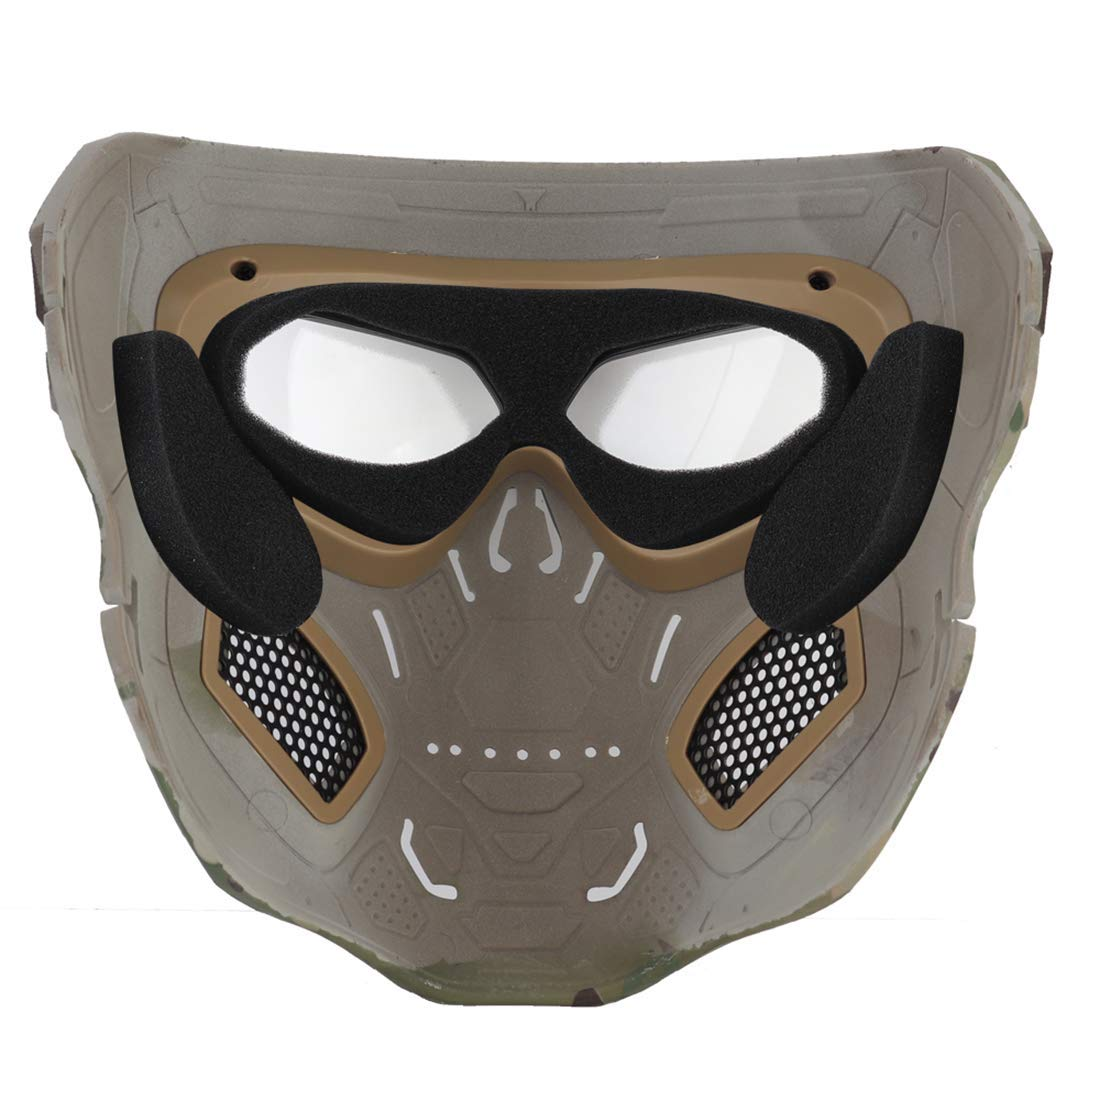 Wosport Skull Airsoft Paintball Mask Full Face Tactical Halloween Party Mask Alexnld Com